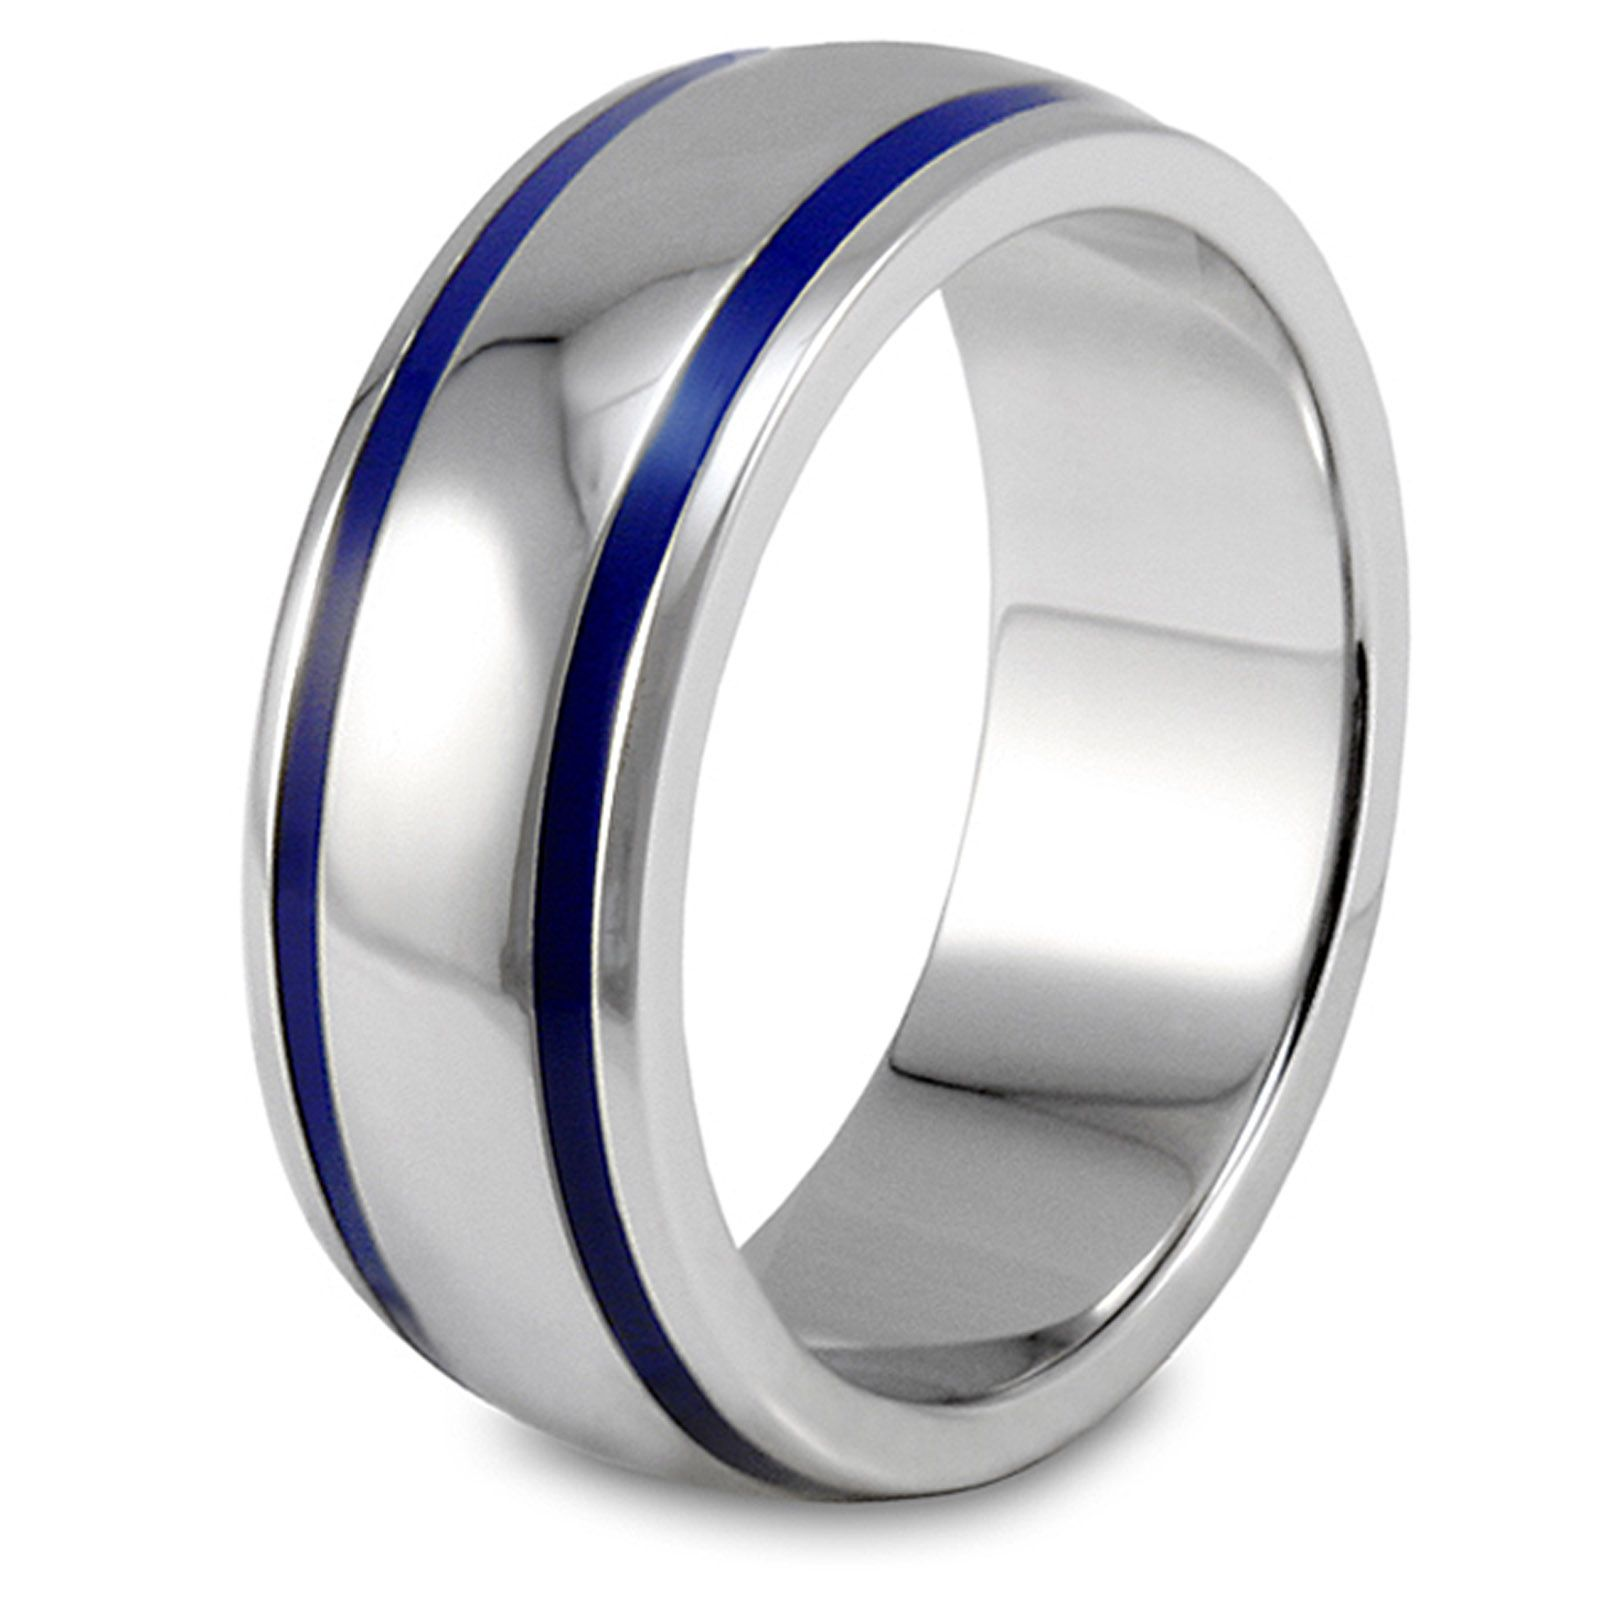 p P stainless steel wedding band West Coast Jewelry Men s Stainless Steel Blue Enamel Groove Domed Ring Jewelry Rings